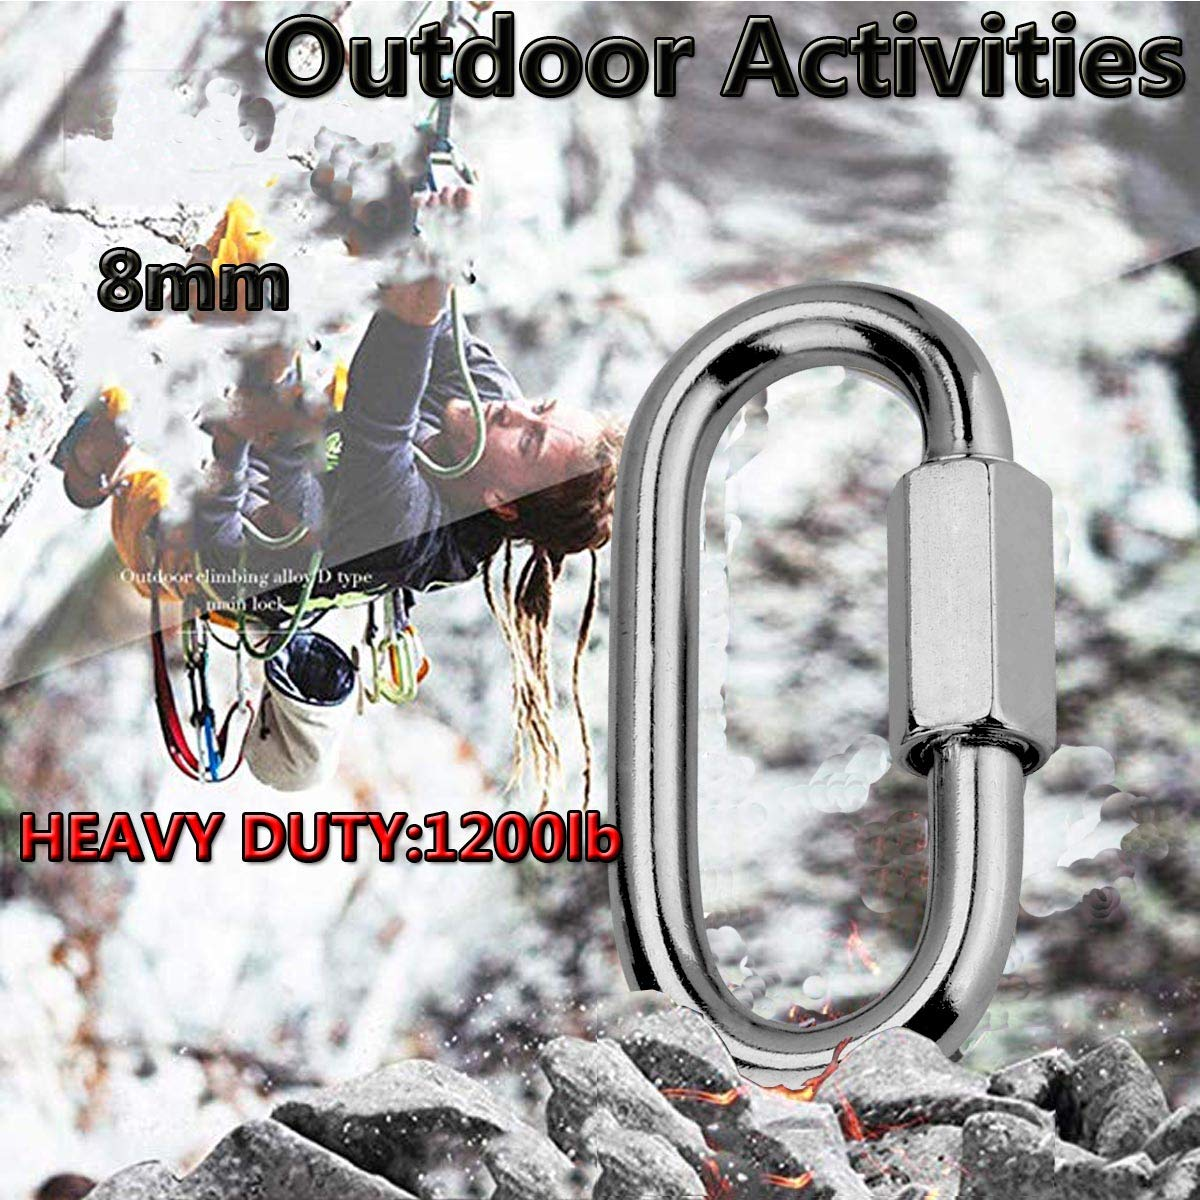 M6 15pack Lsquirrel 304 Stainless Steel D Shape Locking Carabiner Heavy Duty Repair Link Pets Keychain for Outdoor Traveling Equipment M4 M6 M8 Capacity 300lb 800lb 1200lb Quick Link